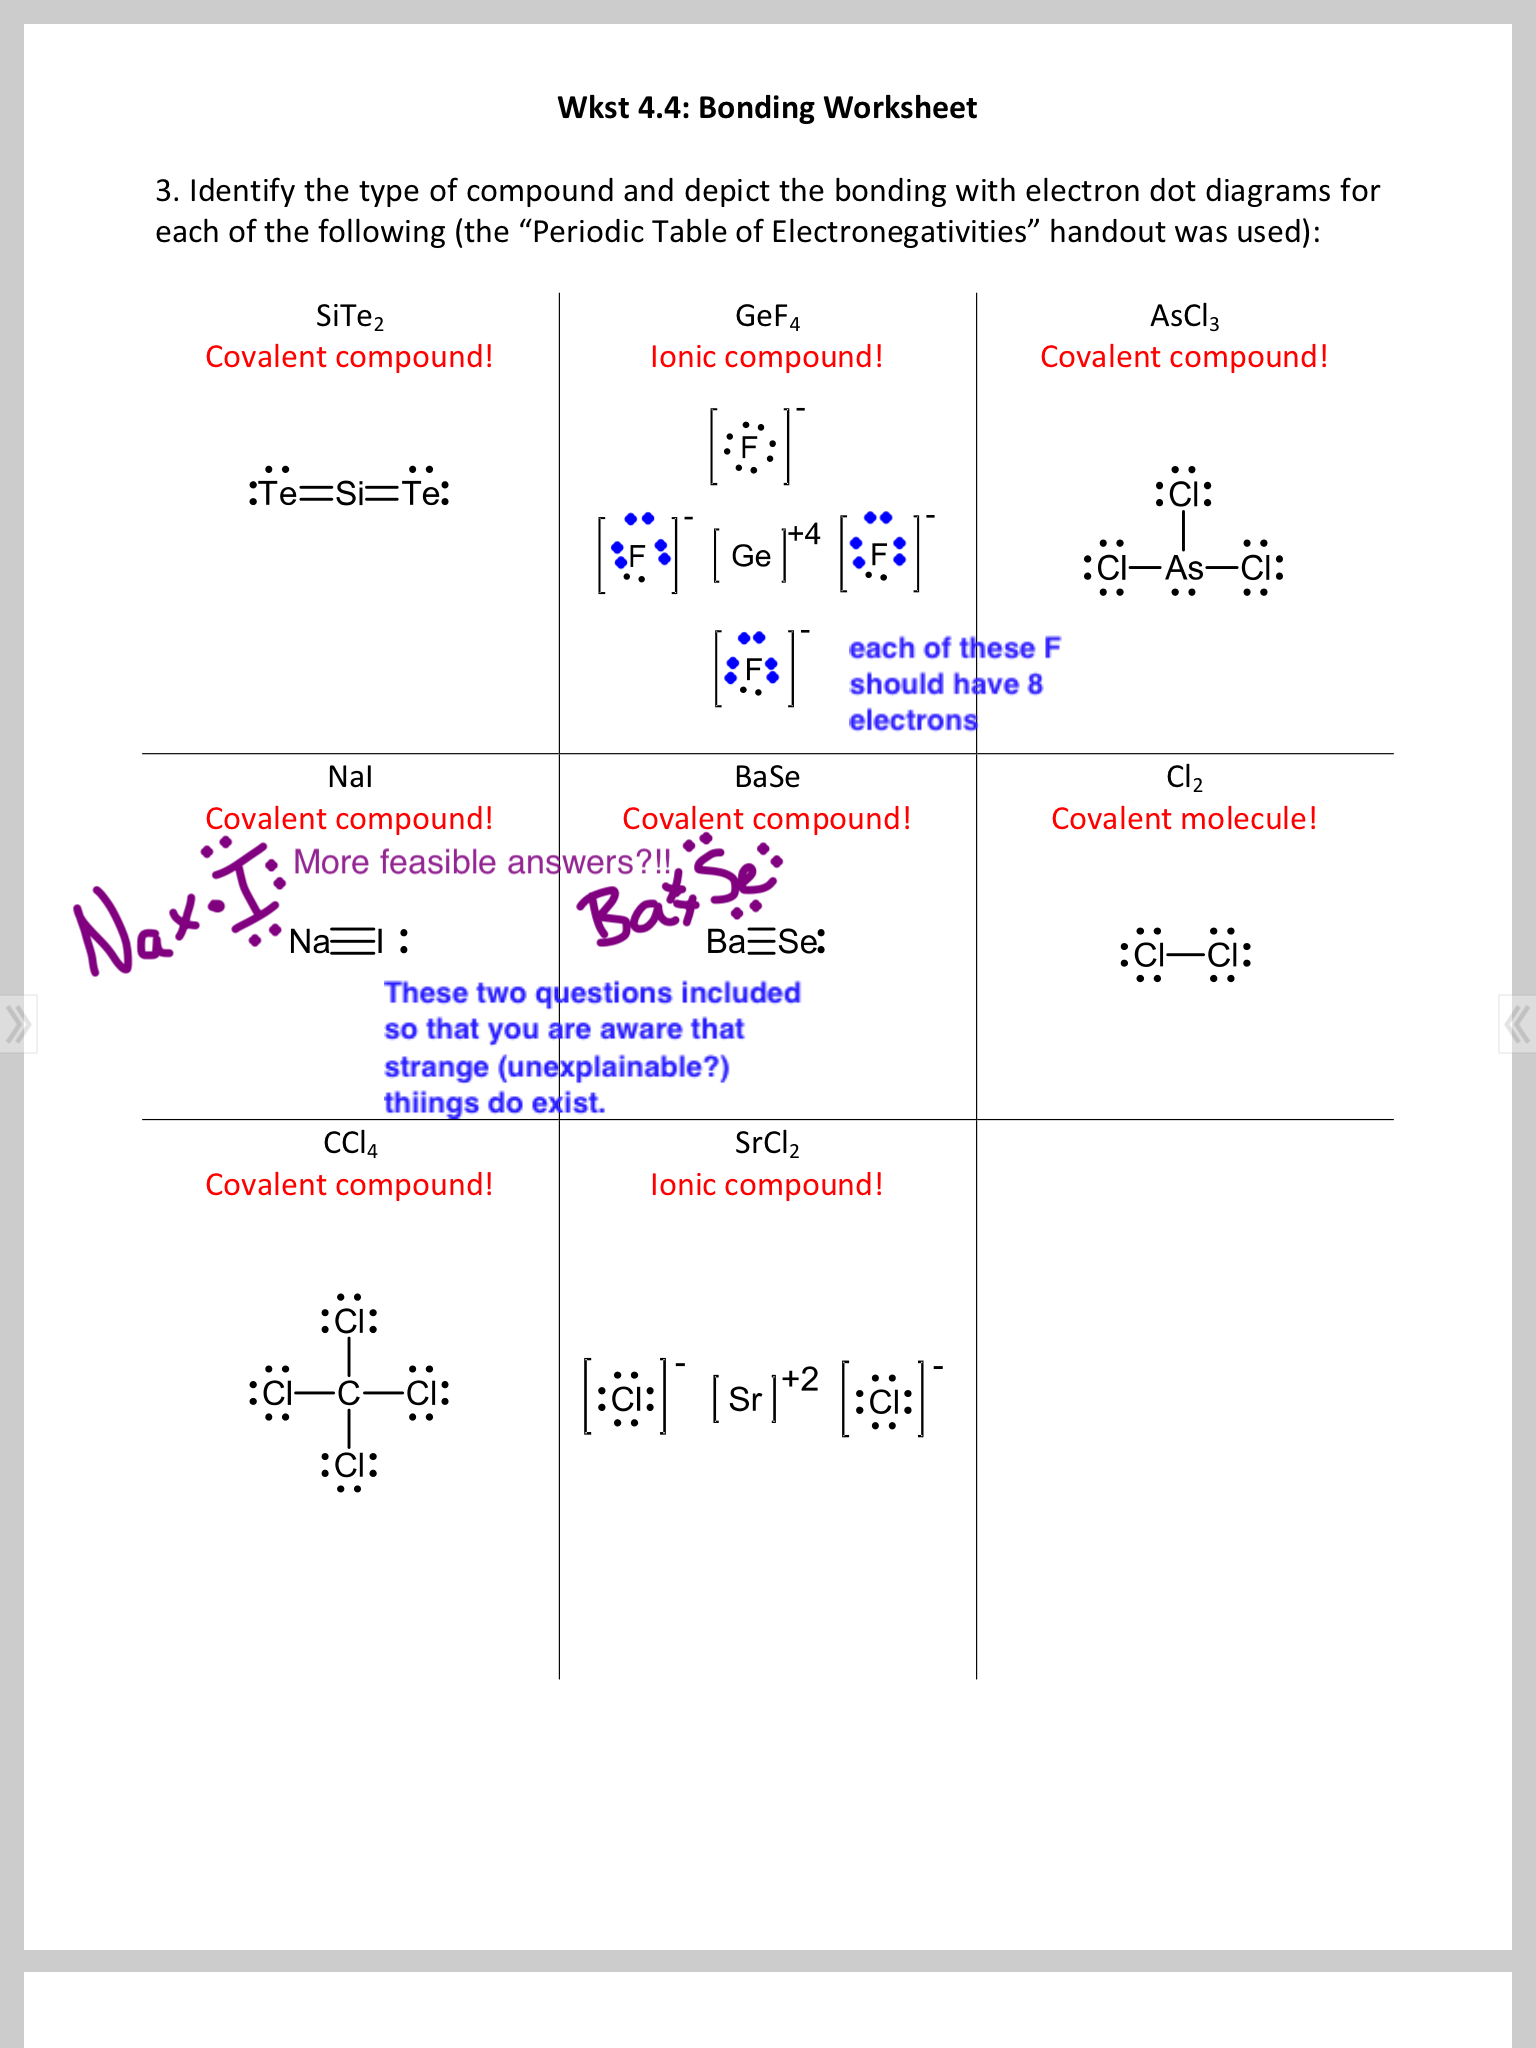 dot diagram questions from worksheet 4 3 (charged polyatomic ions like  nh4+ and coordinate covalent bonds such as n2o4 etc)  starting to work on  wkst4 4